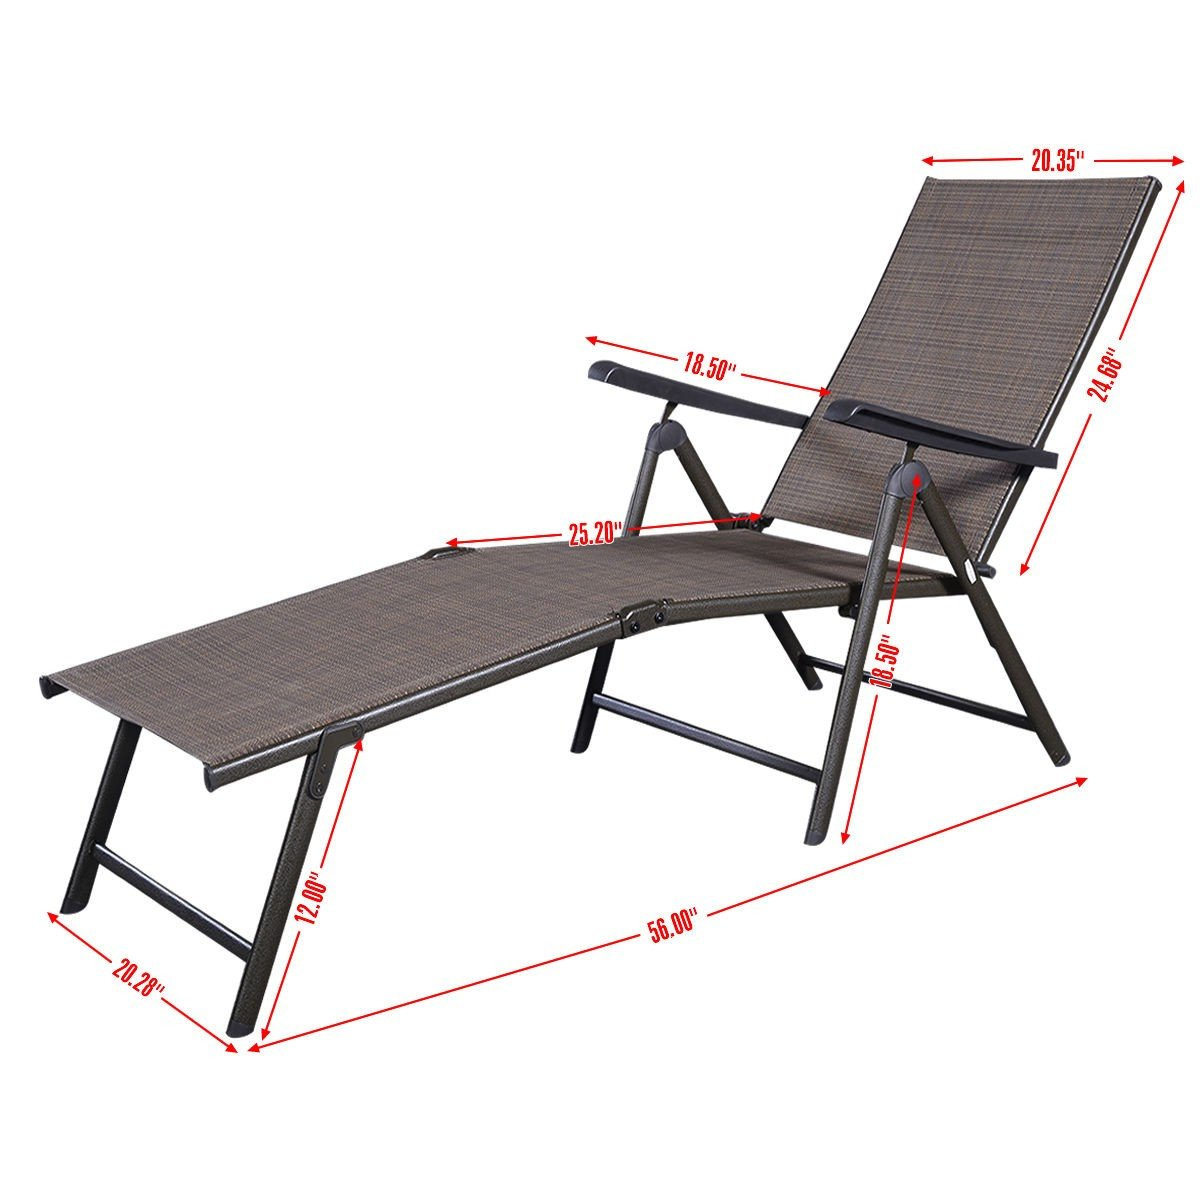 Camping Lounge Chair Outdoor Adjustable Chaise Lounge Chair By Choice Products